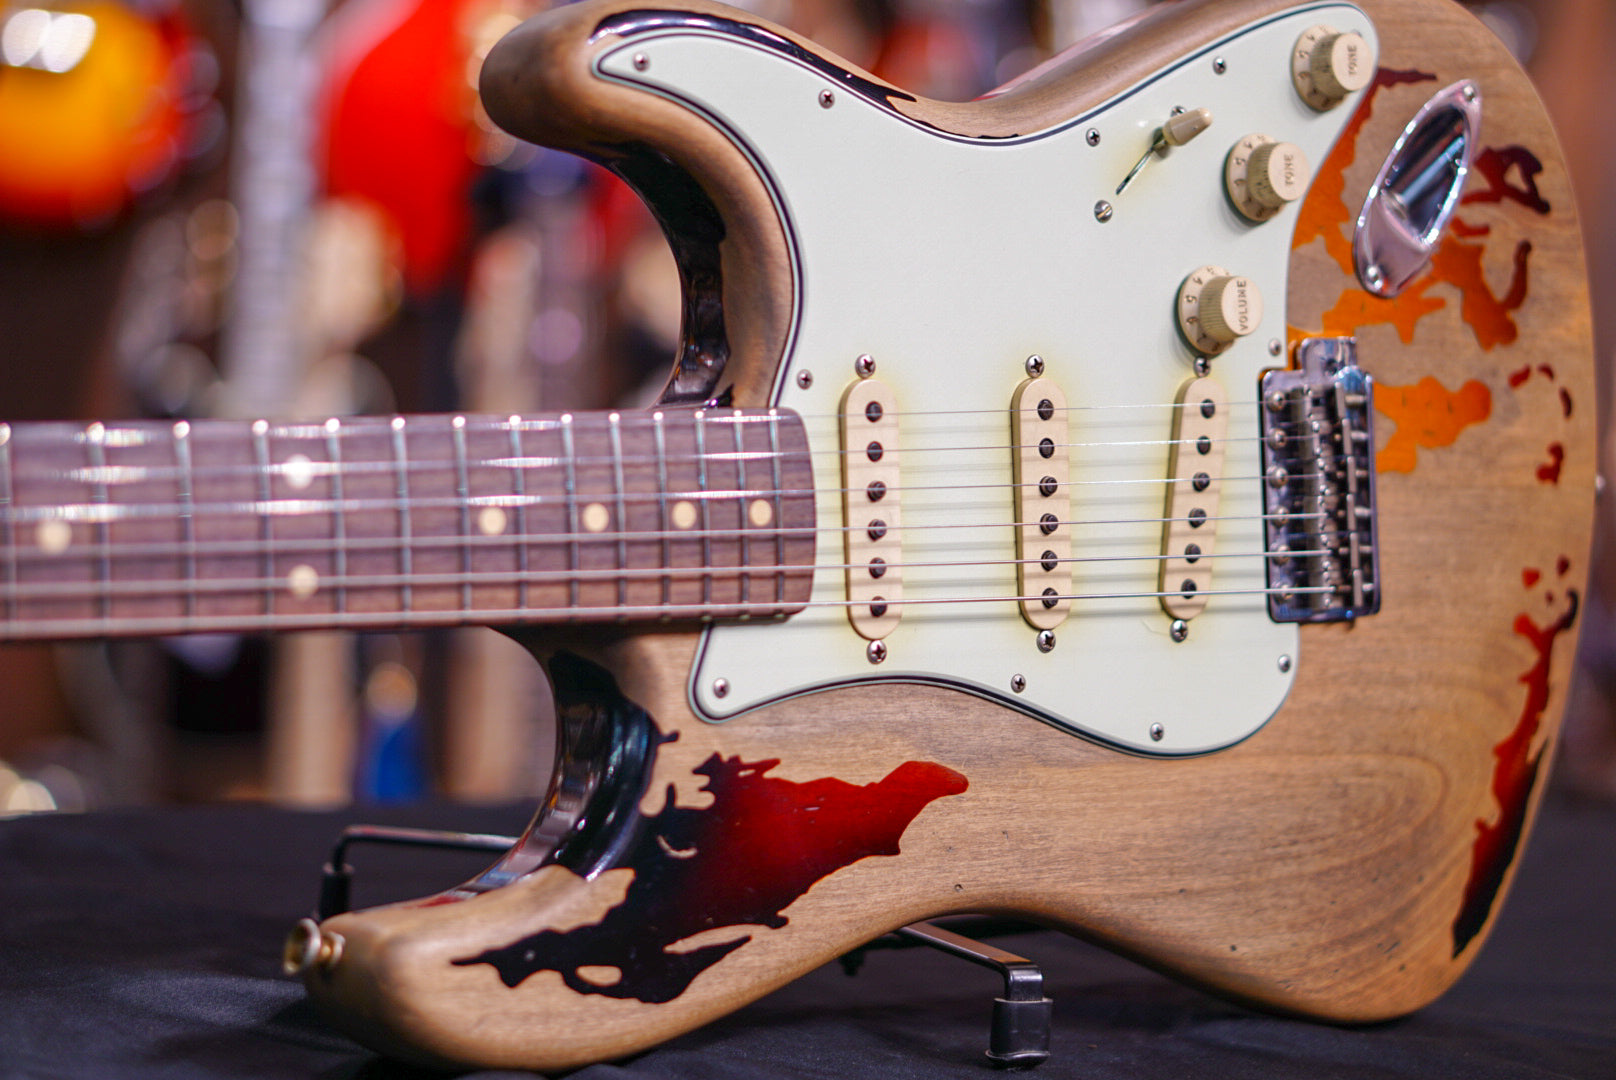 Fender custom shop rory Gallagher